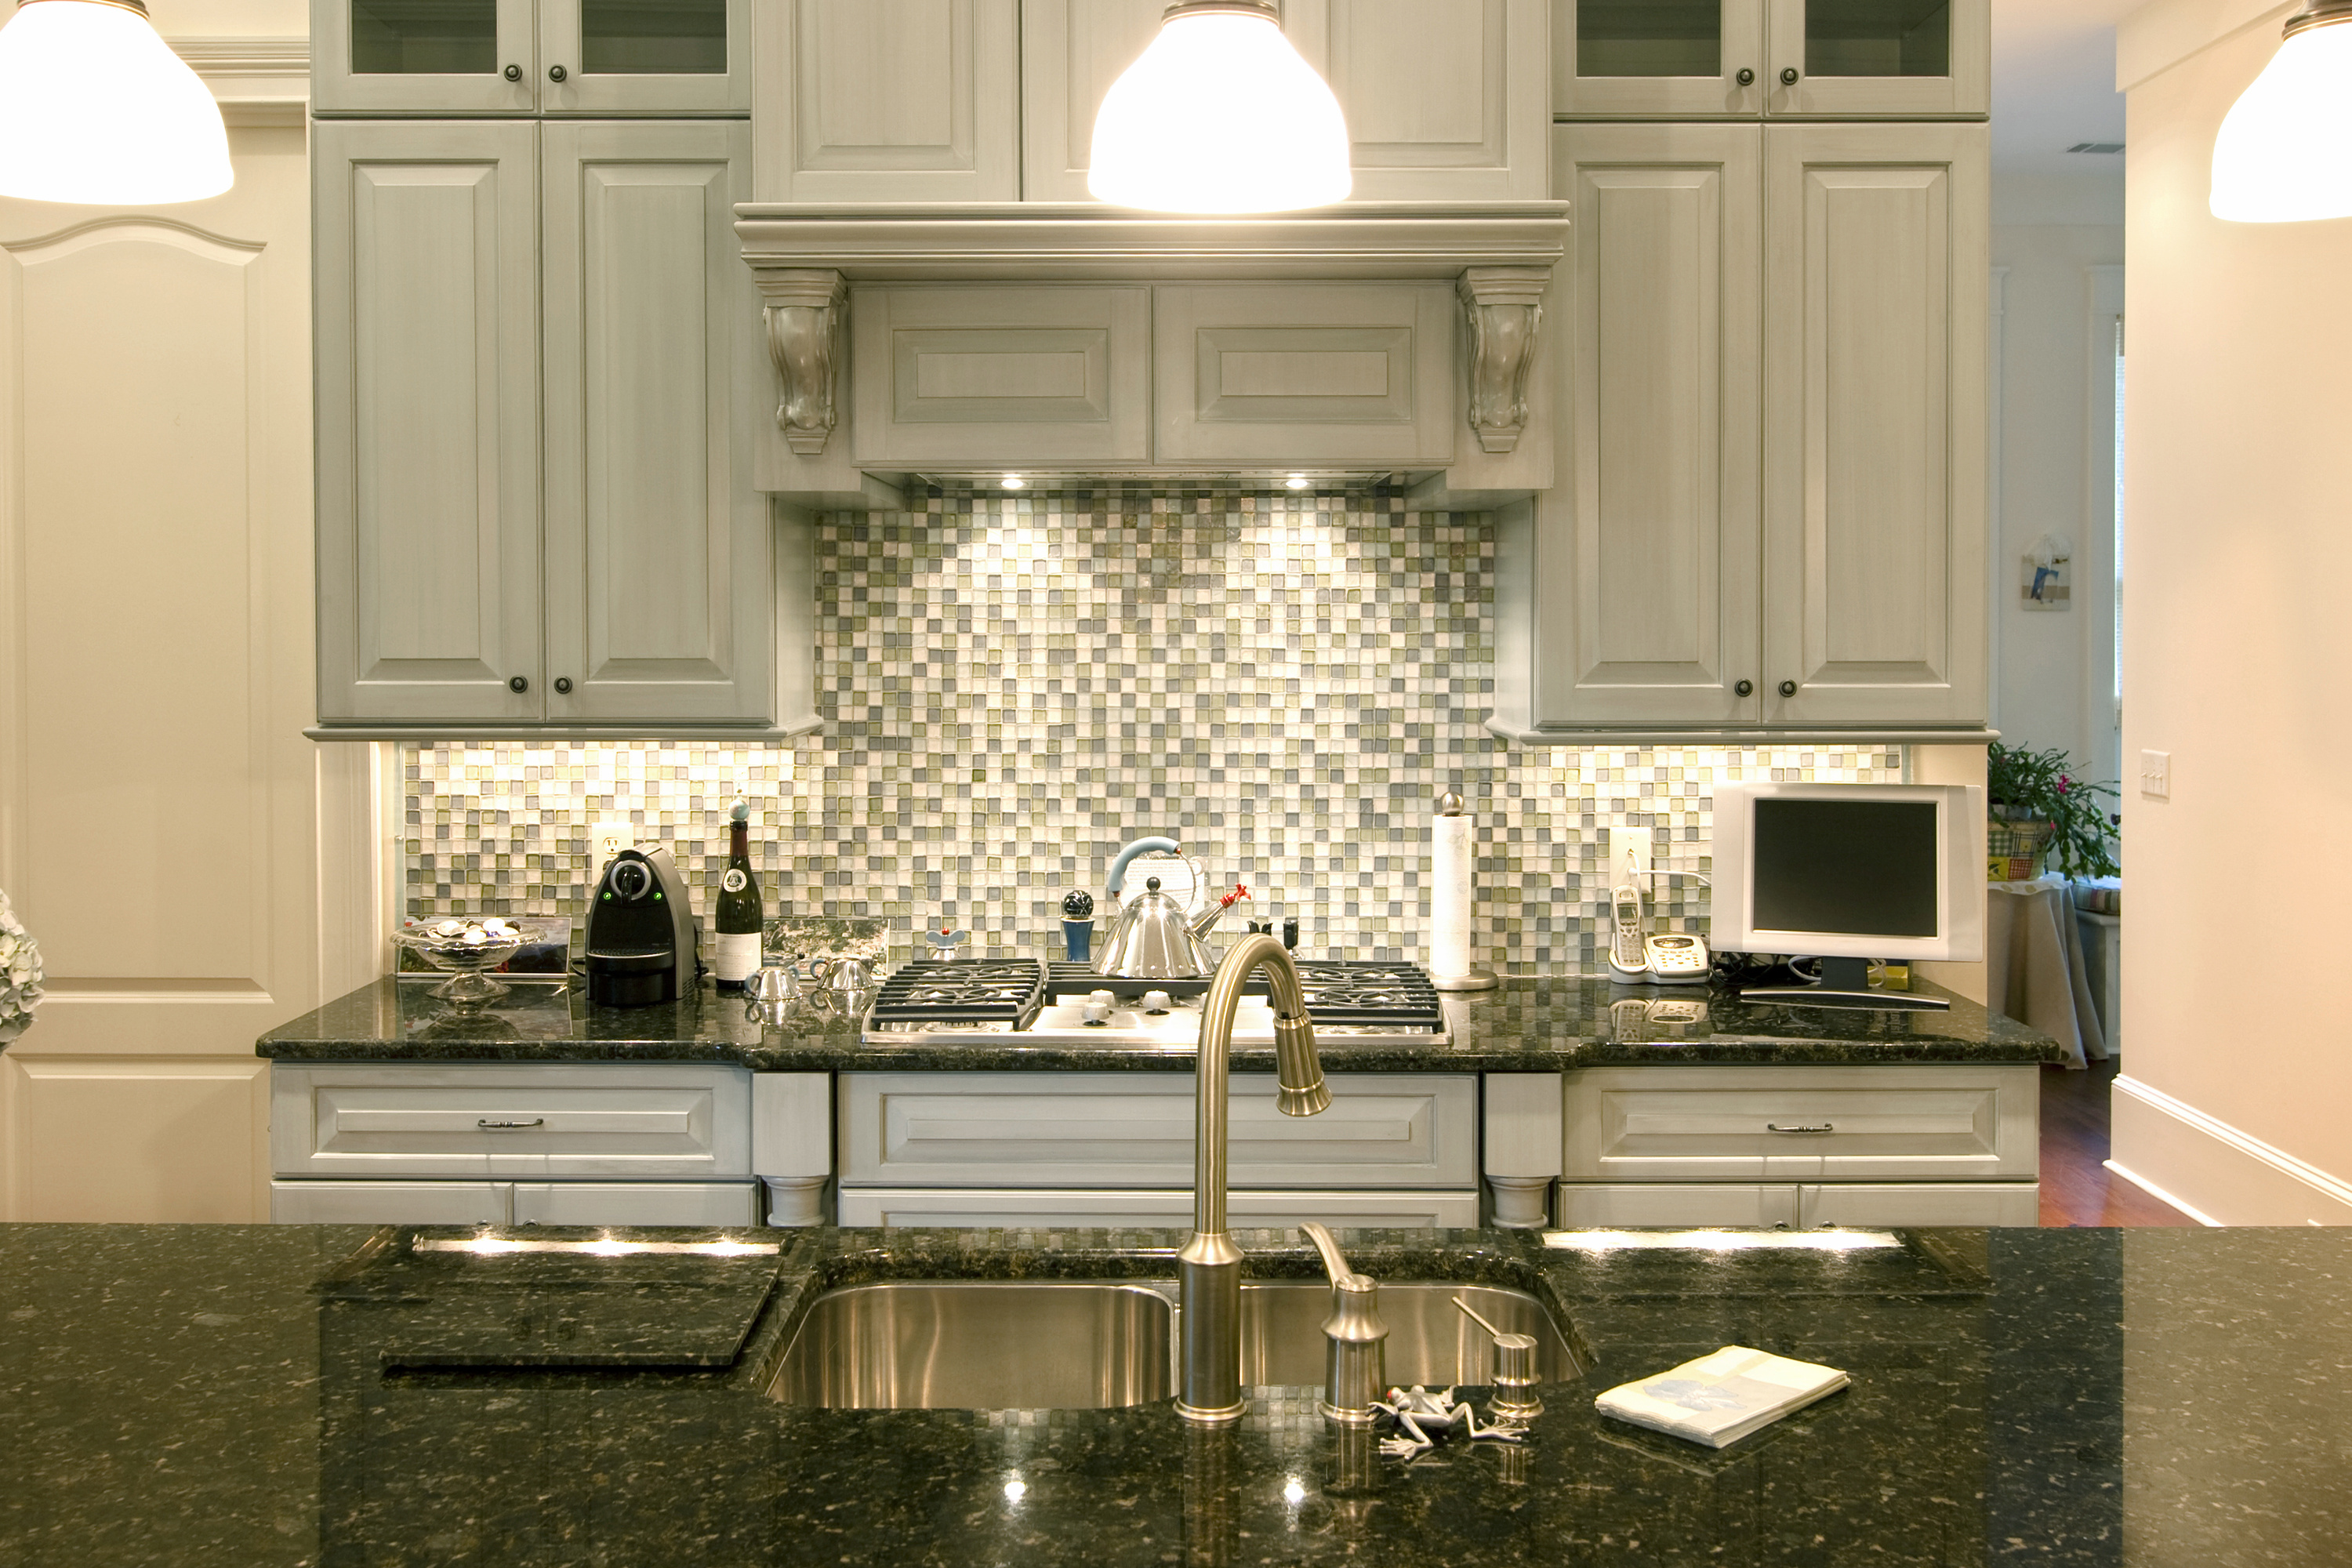 Best Backsplash For White Cabinets And Black Granite The Best Backsplash Ideas For Black Granite Countertops